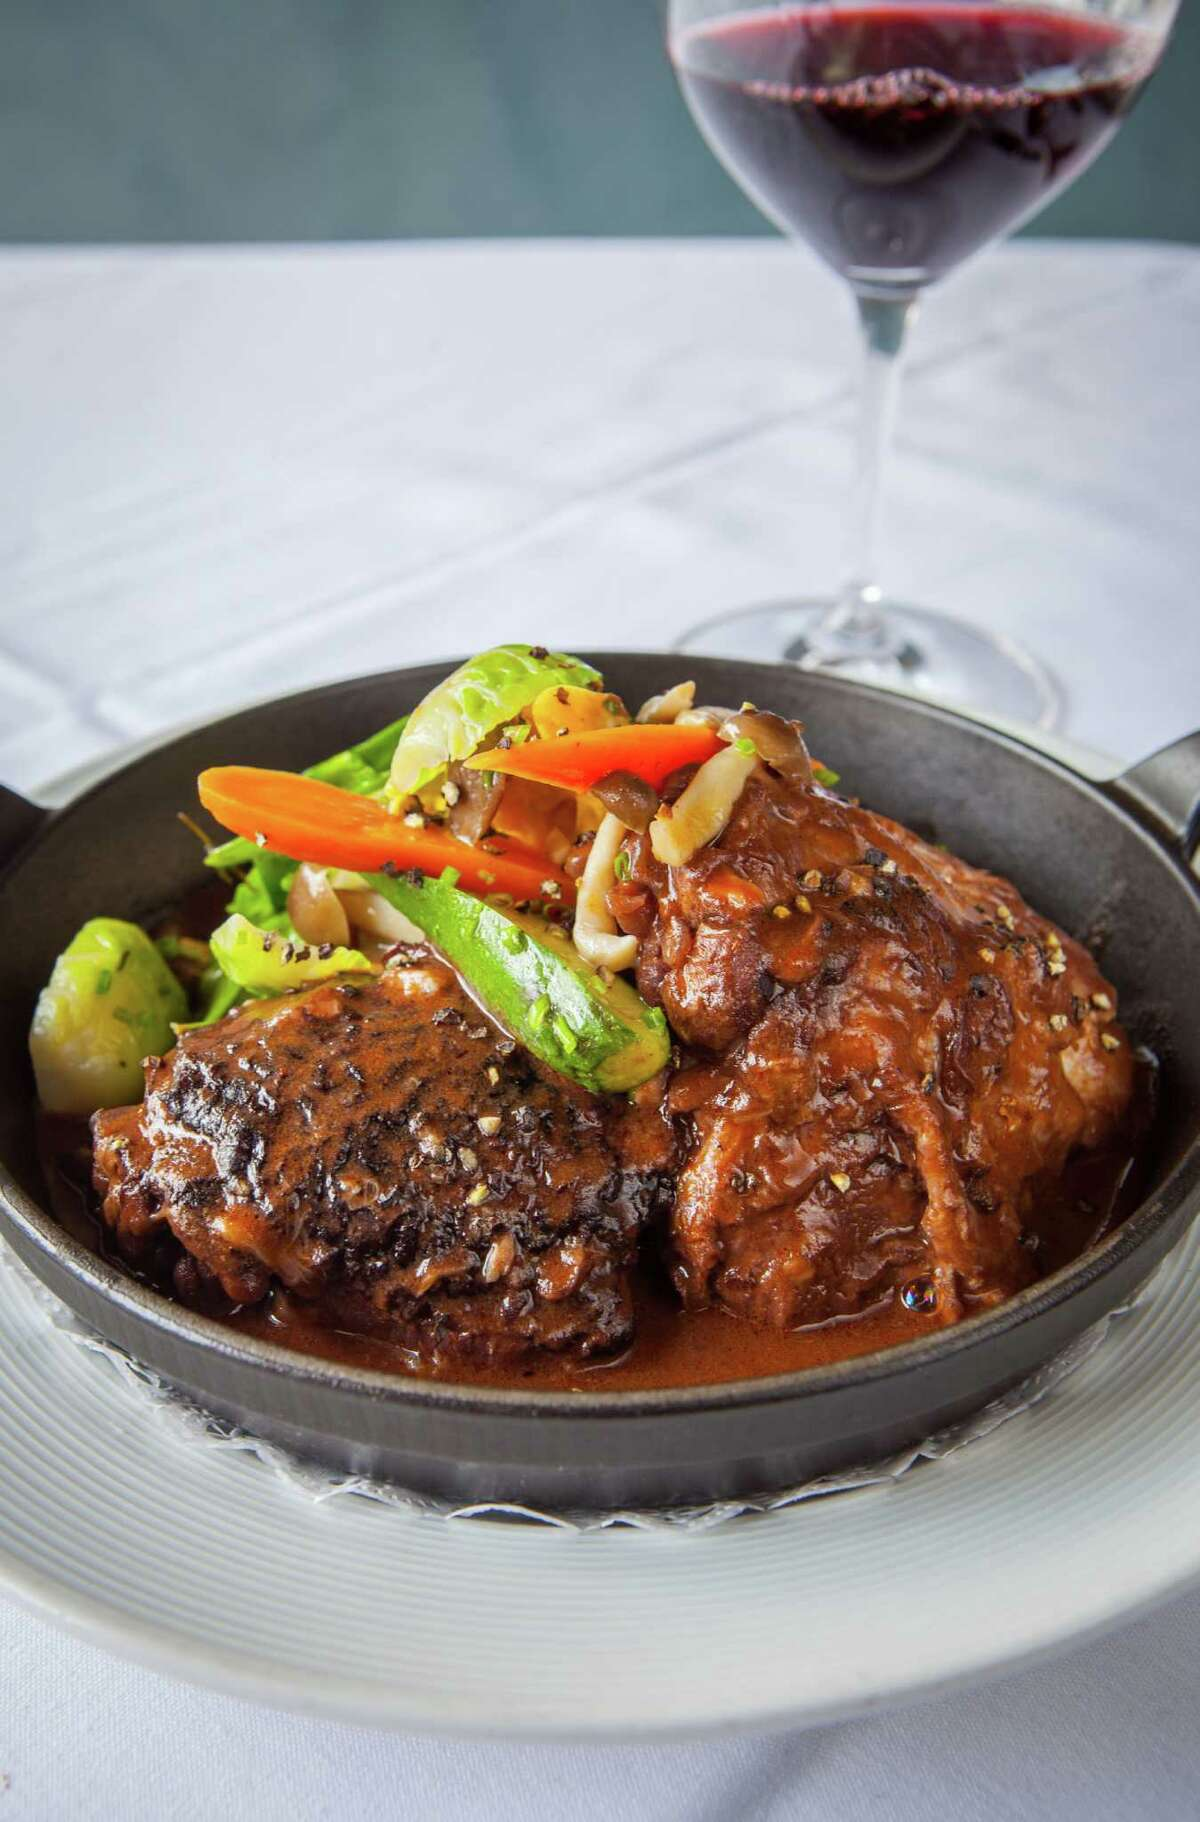 Etoile Cuisine et Bar: Coq au Vin, chicken braised in red wine with creamy potatoes and spring vegetables. Etoile's coq au vin, chicken braised in red wine, creamy potatoes, spring vegetables.